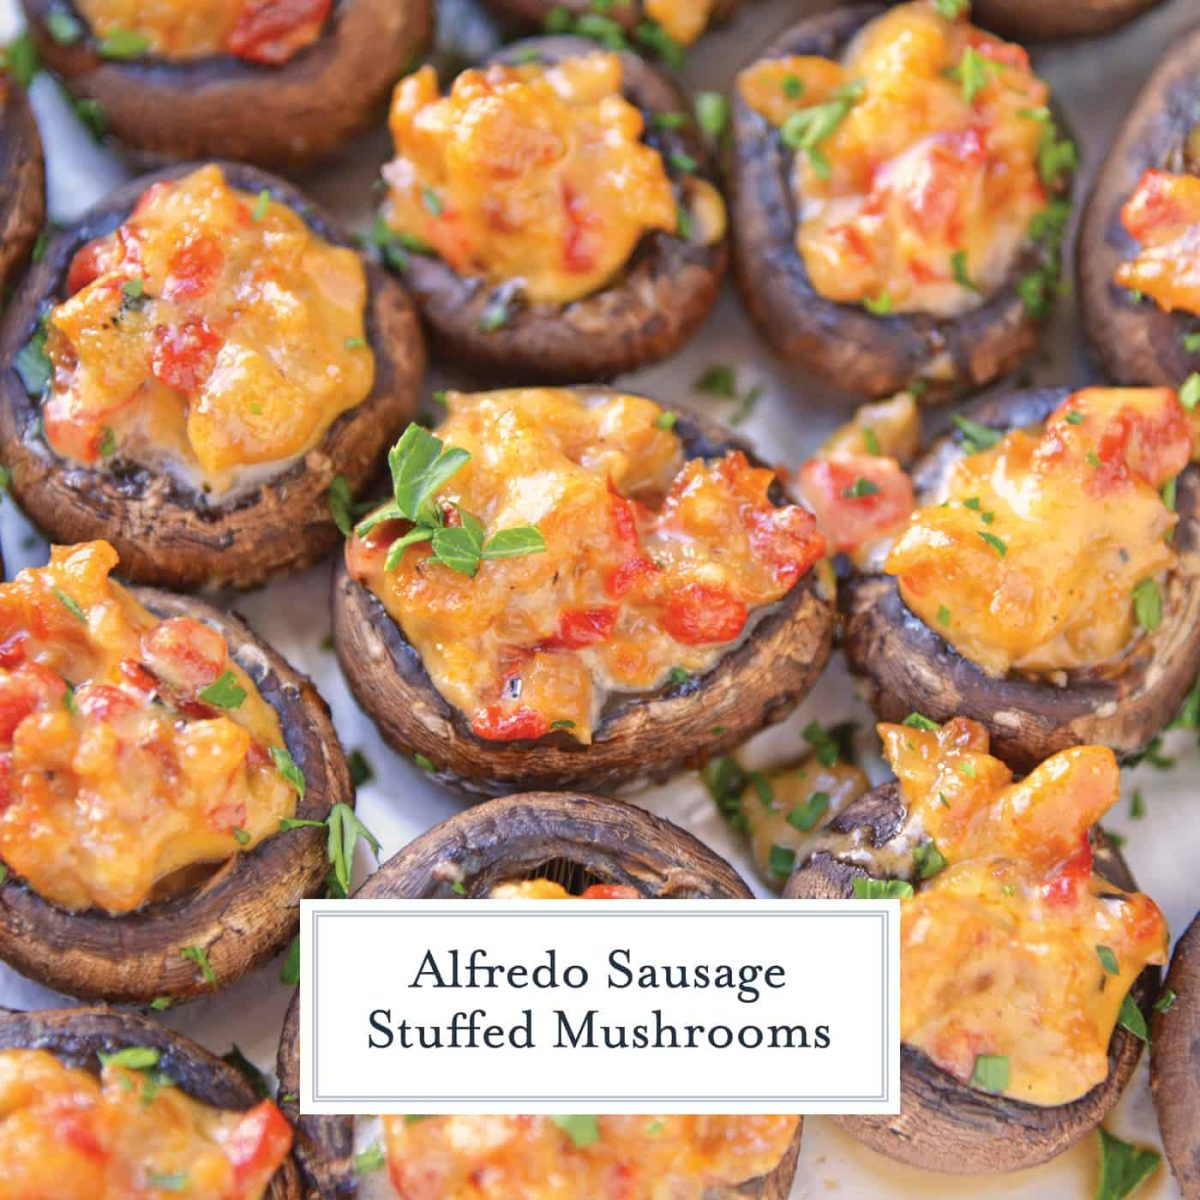 Alfredo Sausage Stuffed Mushrooms are an easy appetizer that's perfect for holiday parties. Everyone will love these stuffed mushrooms with sausage! #sausagestuffedmushrooms #stuffedmushrooms www.savoryexperiments.com